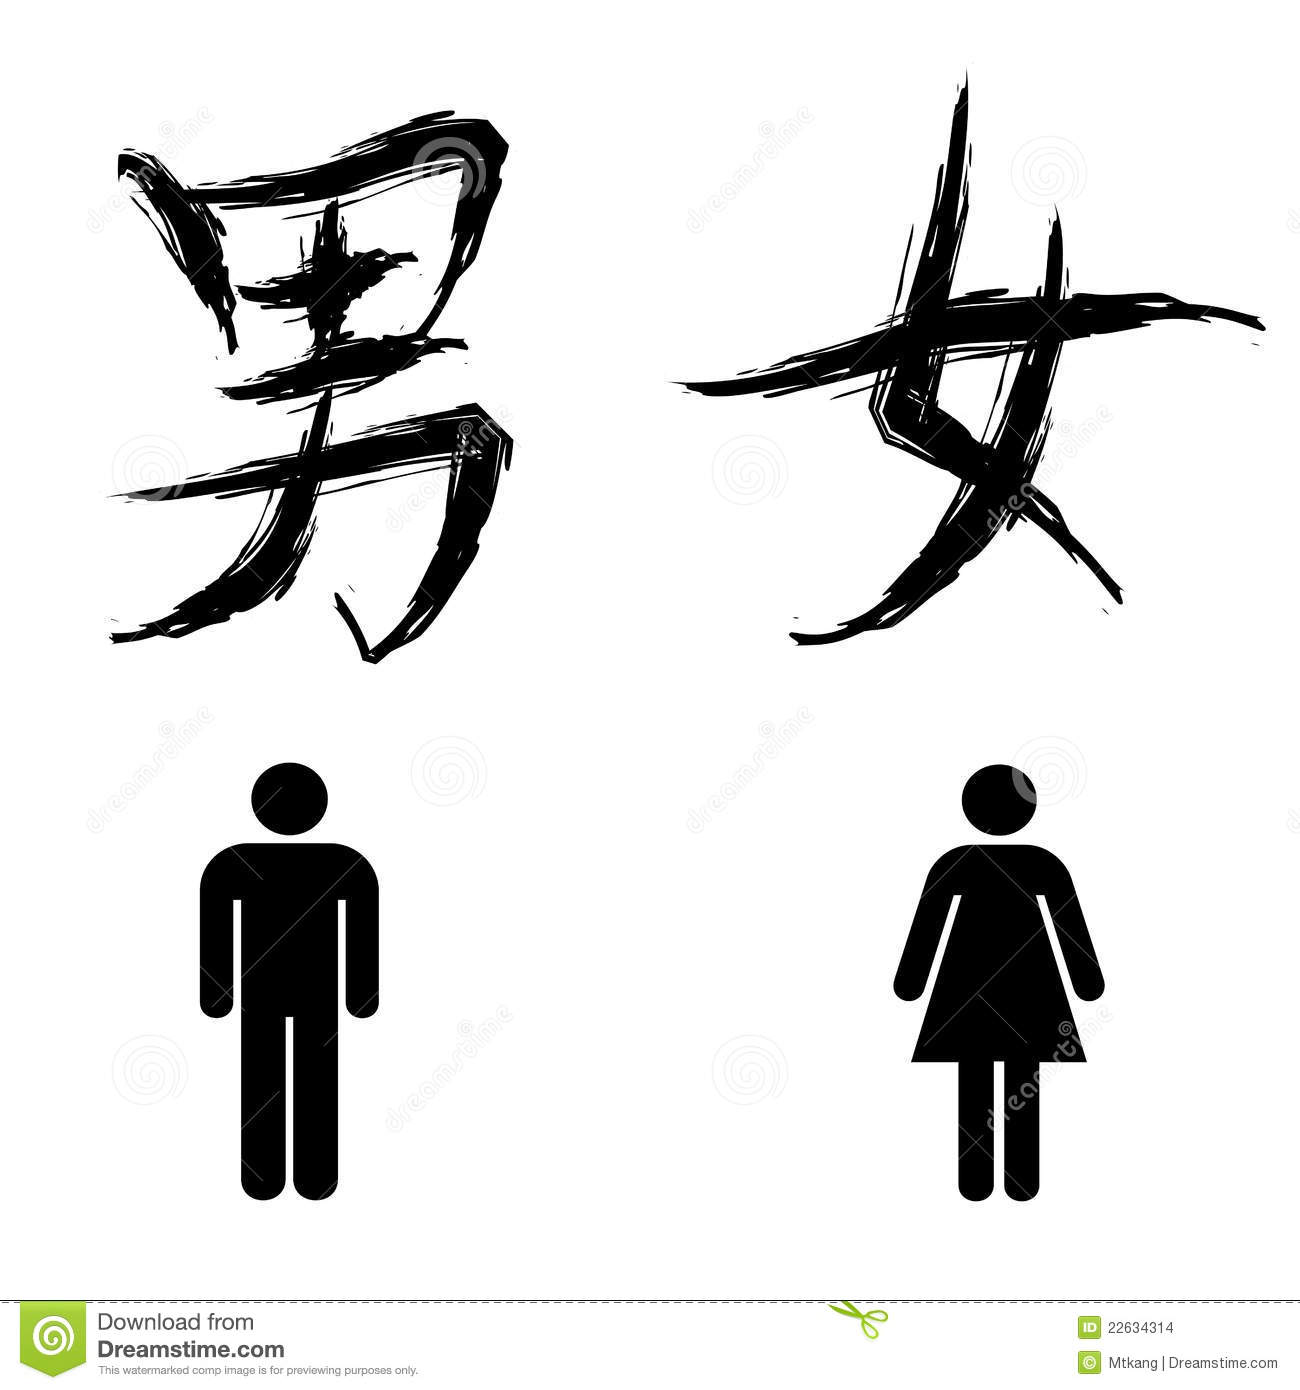 Toilet sign stock images image 22634314 Calligraphy and sign